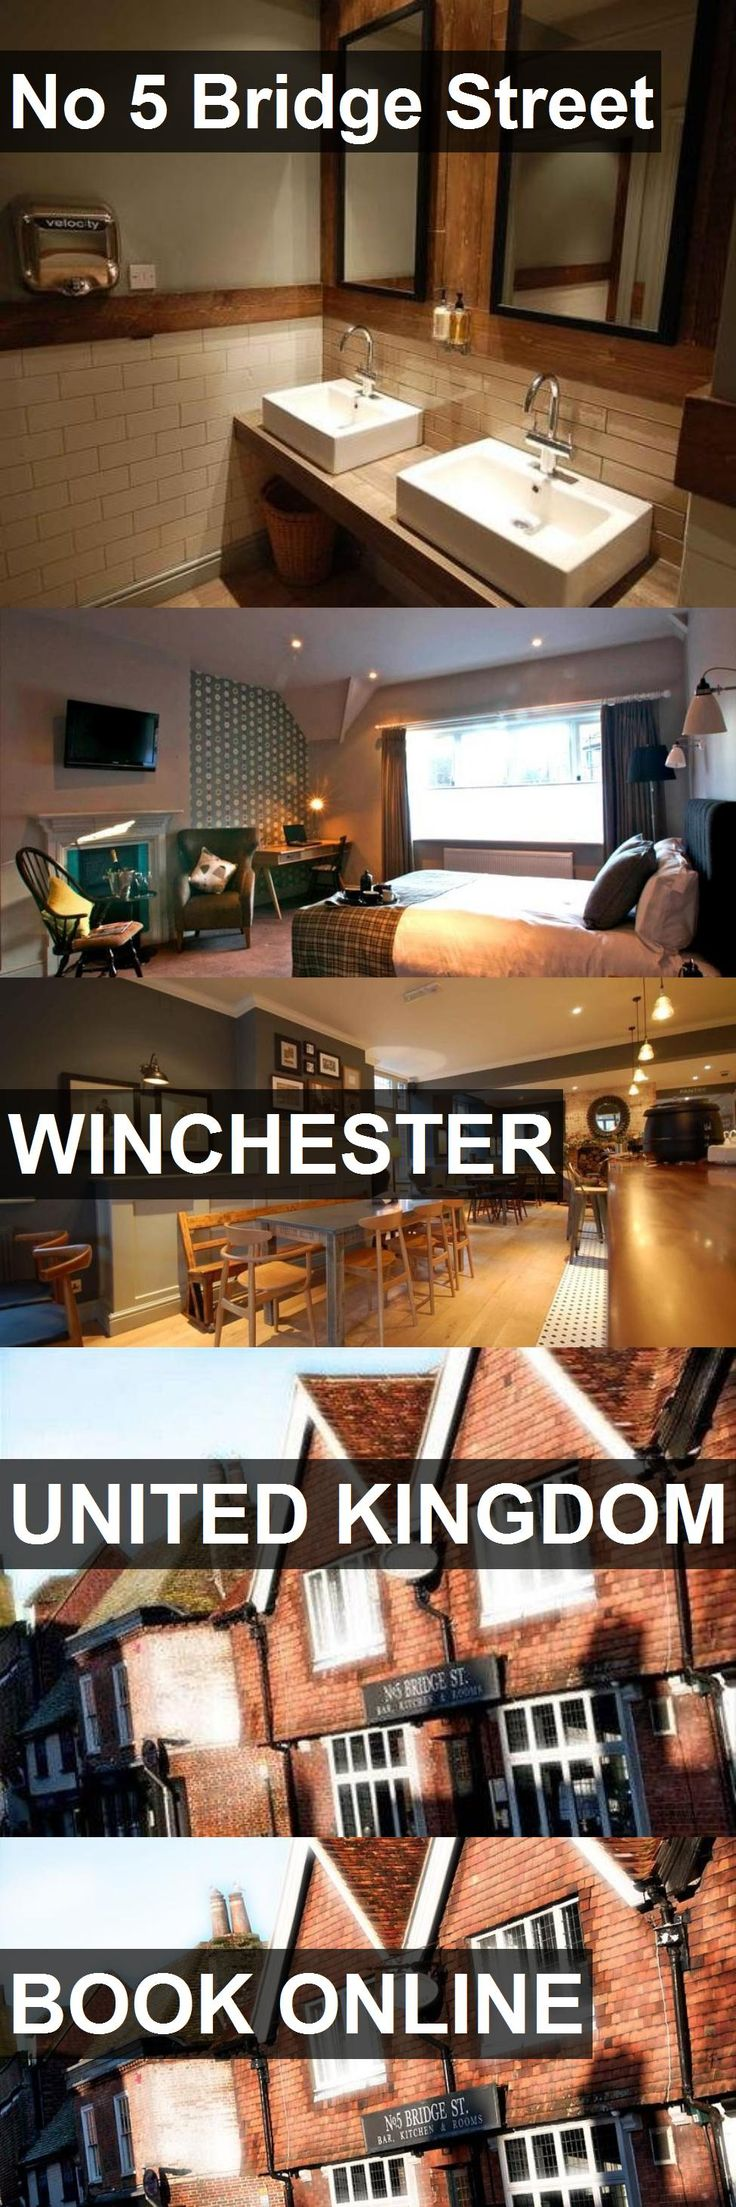 Hotel No 5 Bridge Street in WINCHESTER, United Kingdom. For more information, photos, reviews and best prices please follow the link. #UnitedKingdom #WINCHESTER #travel #vacation #hotel